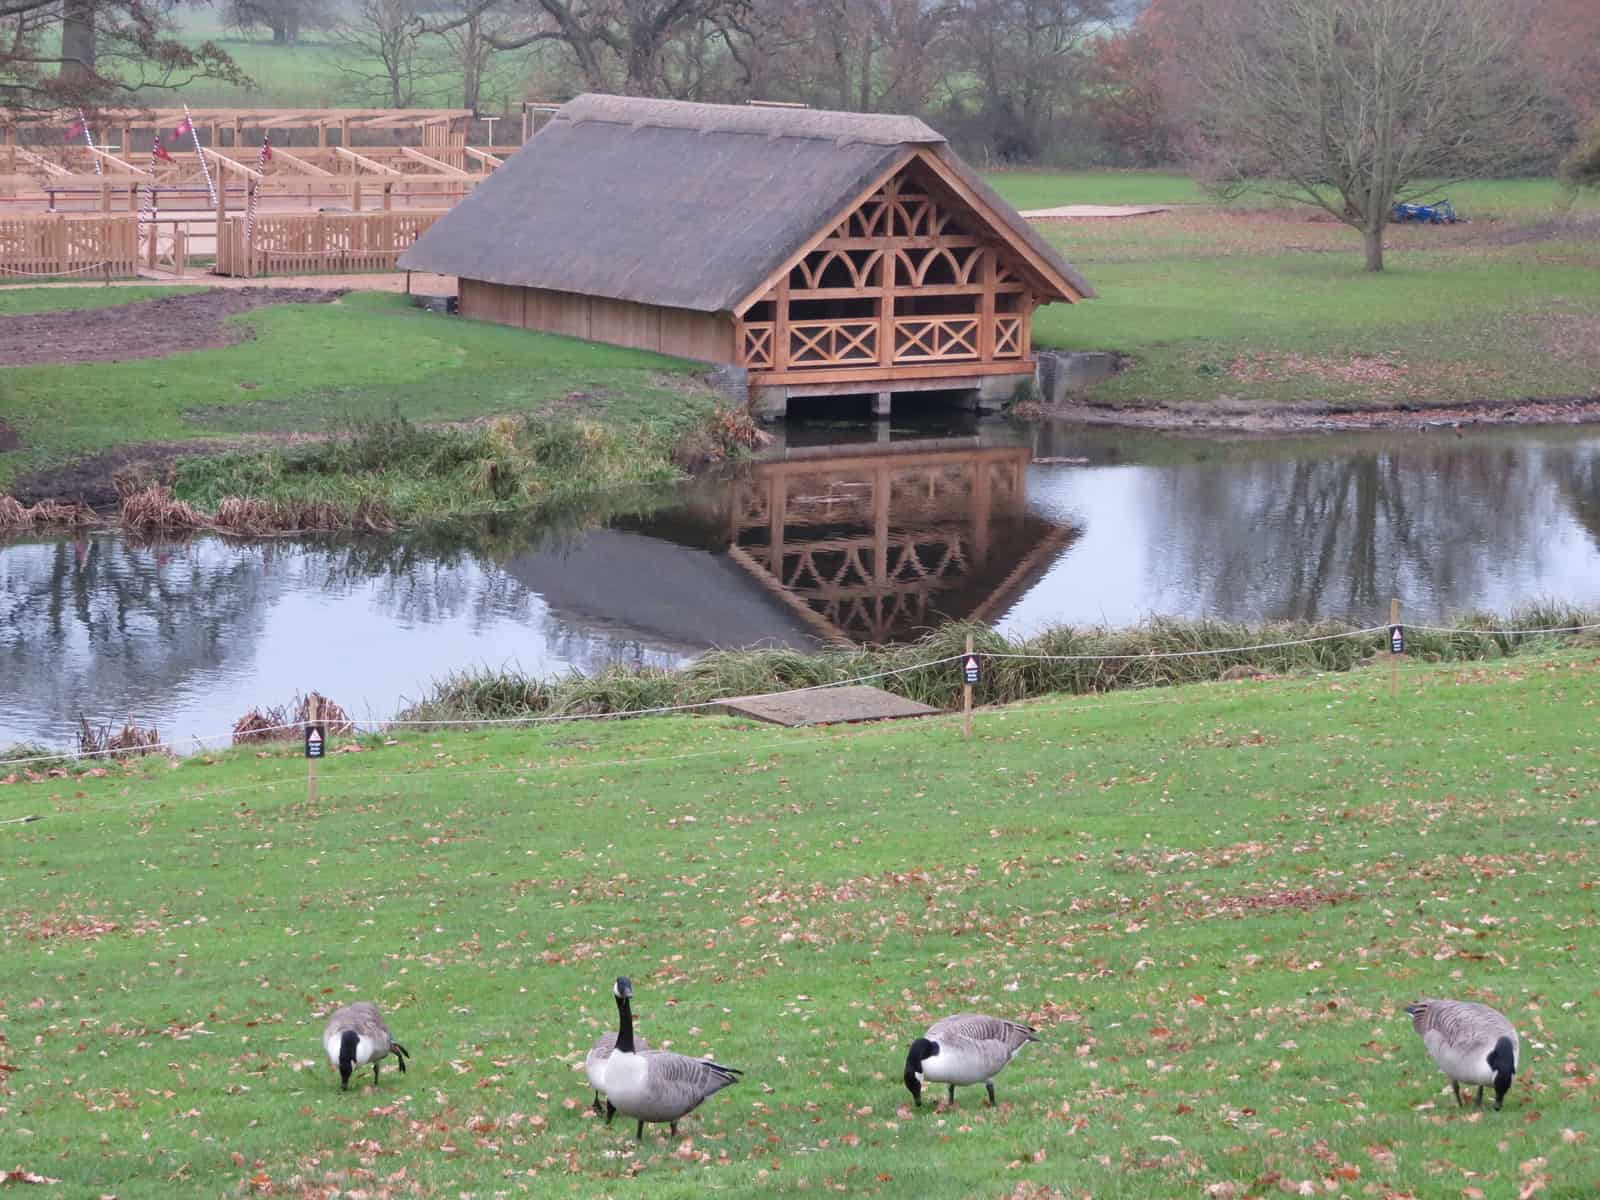 A wooden building with a thatched roof reflected in a river. In the foreground are Canada geese.